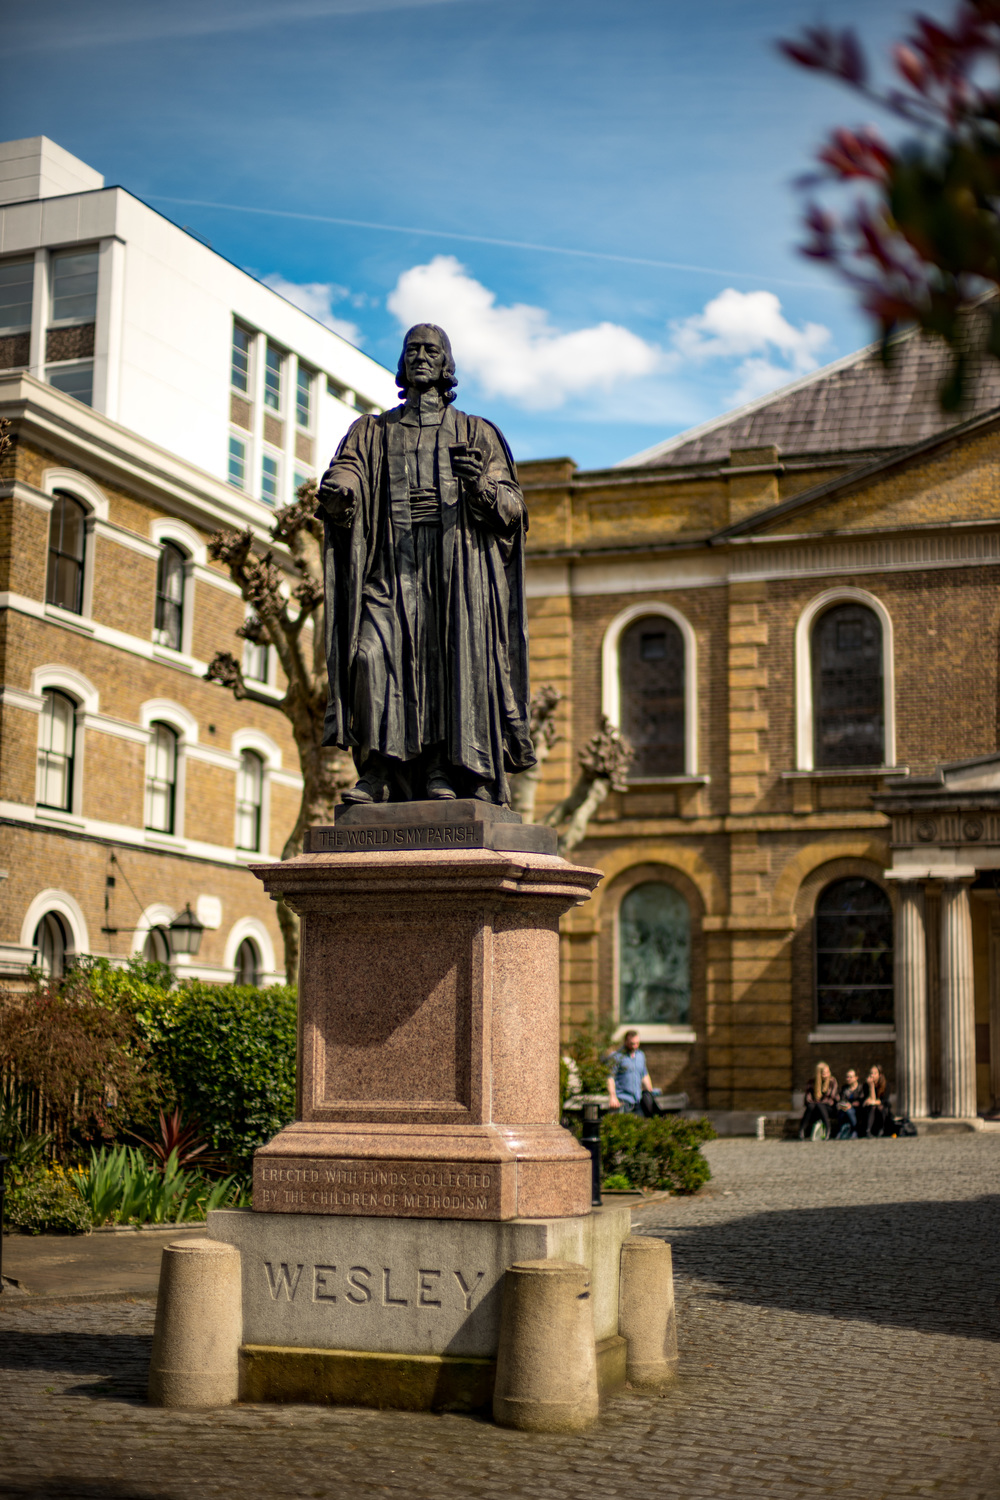 Architecture wide open on the Noctilux? It's not something normally to be recommended. But the lens acquitted itself remarkably well, offering an impressive 3D effect. John Wesley stands in front of his chapel, just across the road from Bunhill Fields, taken at 1/6400s, ISO50 and f/0.95. This is a good example of a shot that would have been impossible on the M without the use of an ND filter.